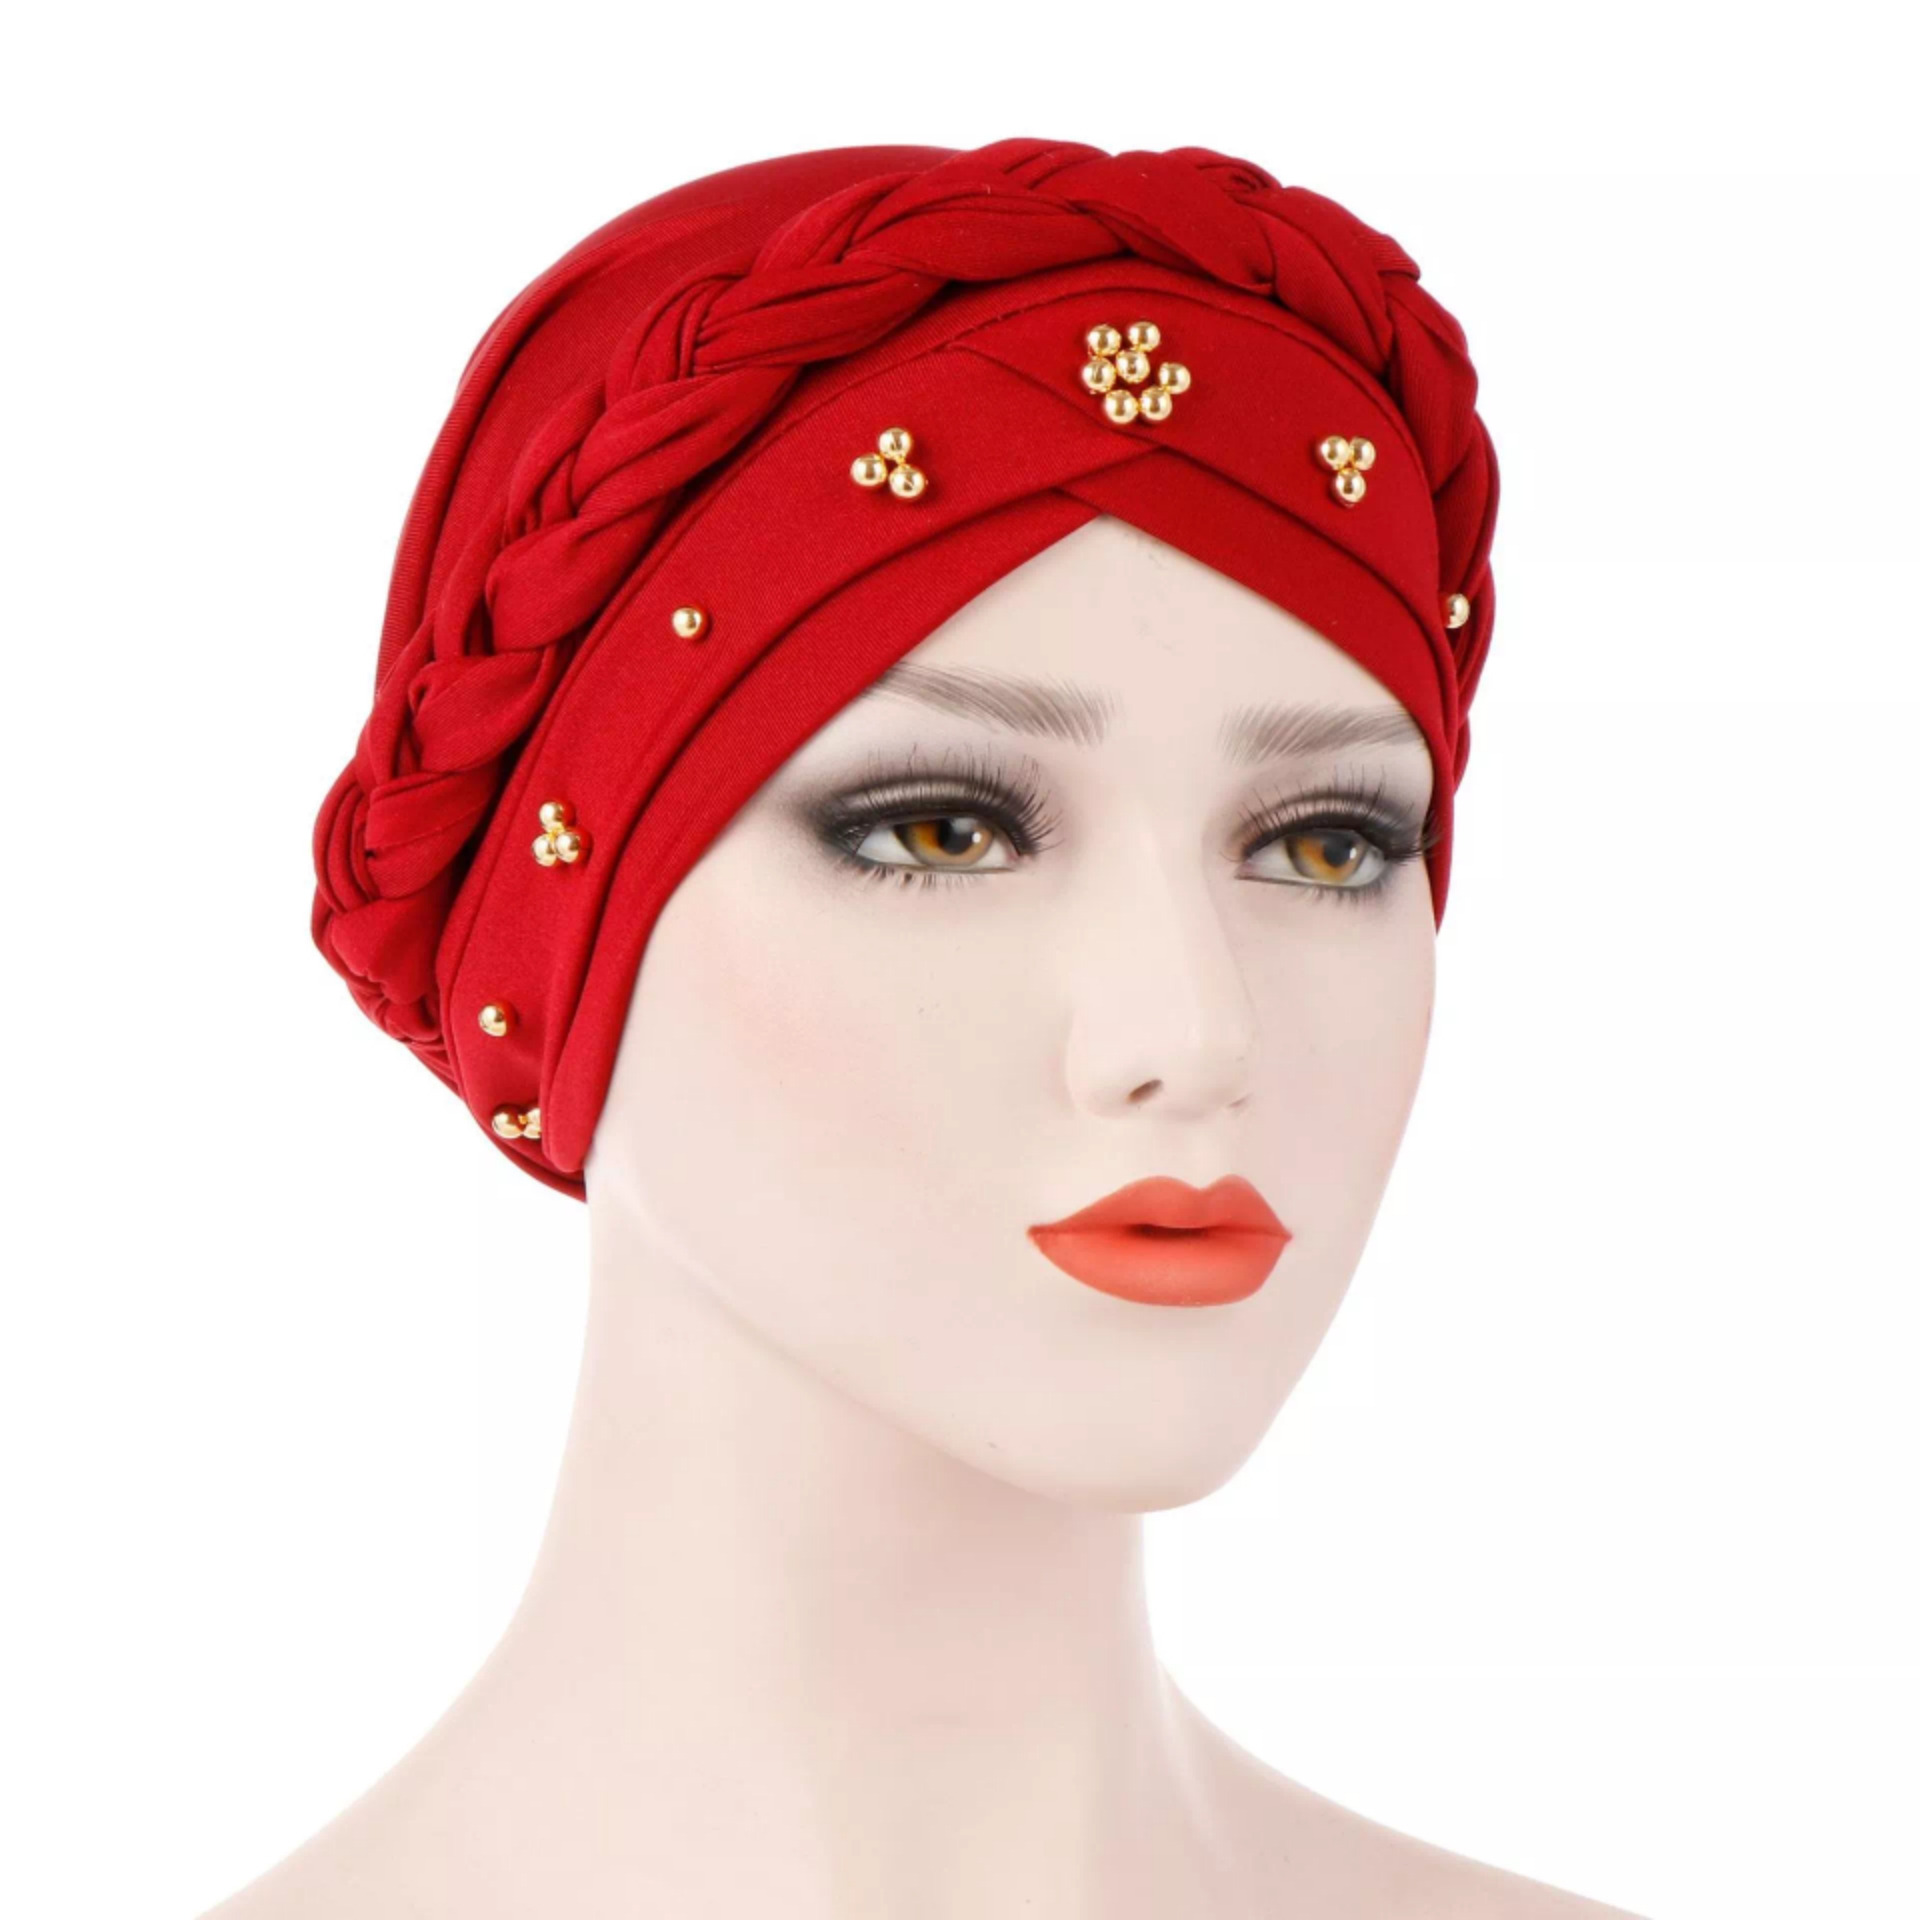 2020 Fashion Design Women Headband Turban Hat Middle East Countries Muslim Beads India Turban